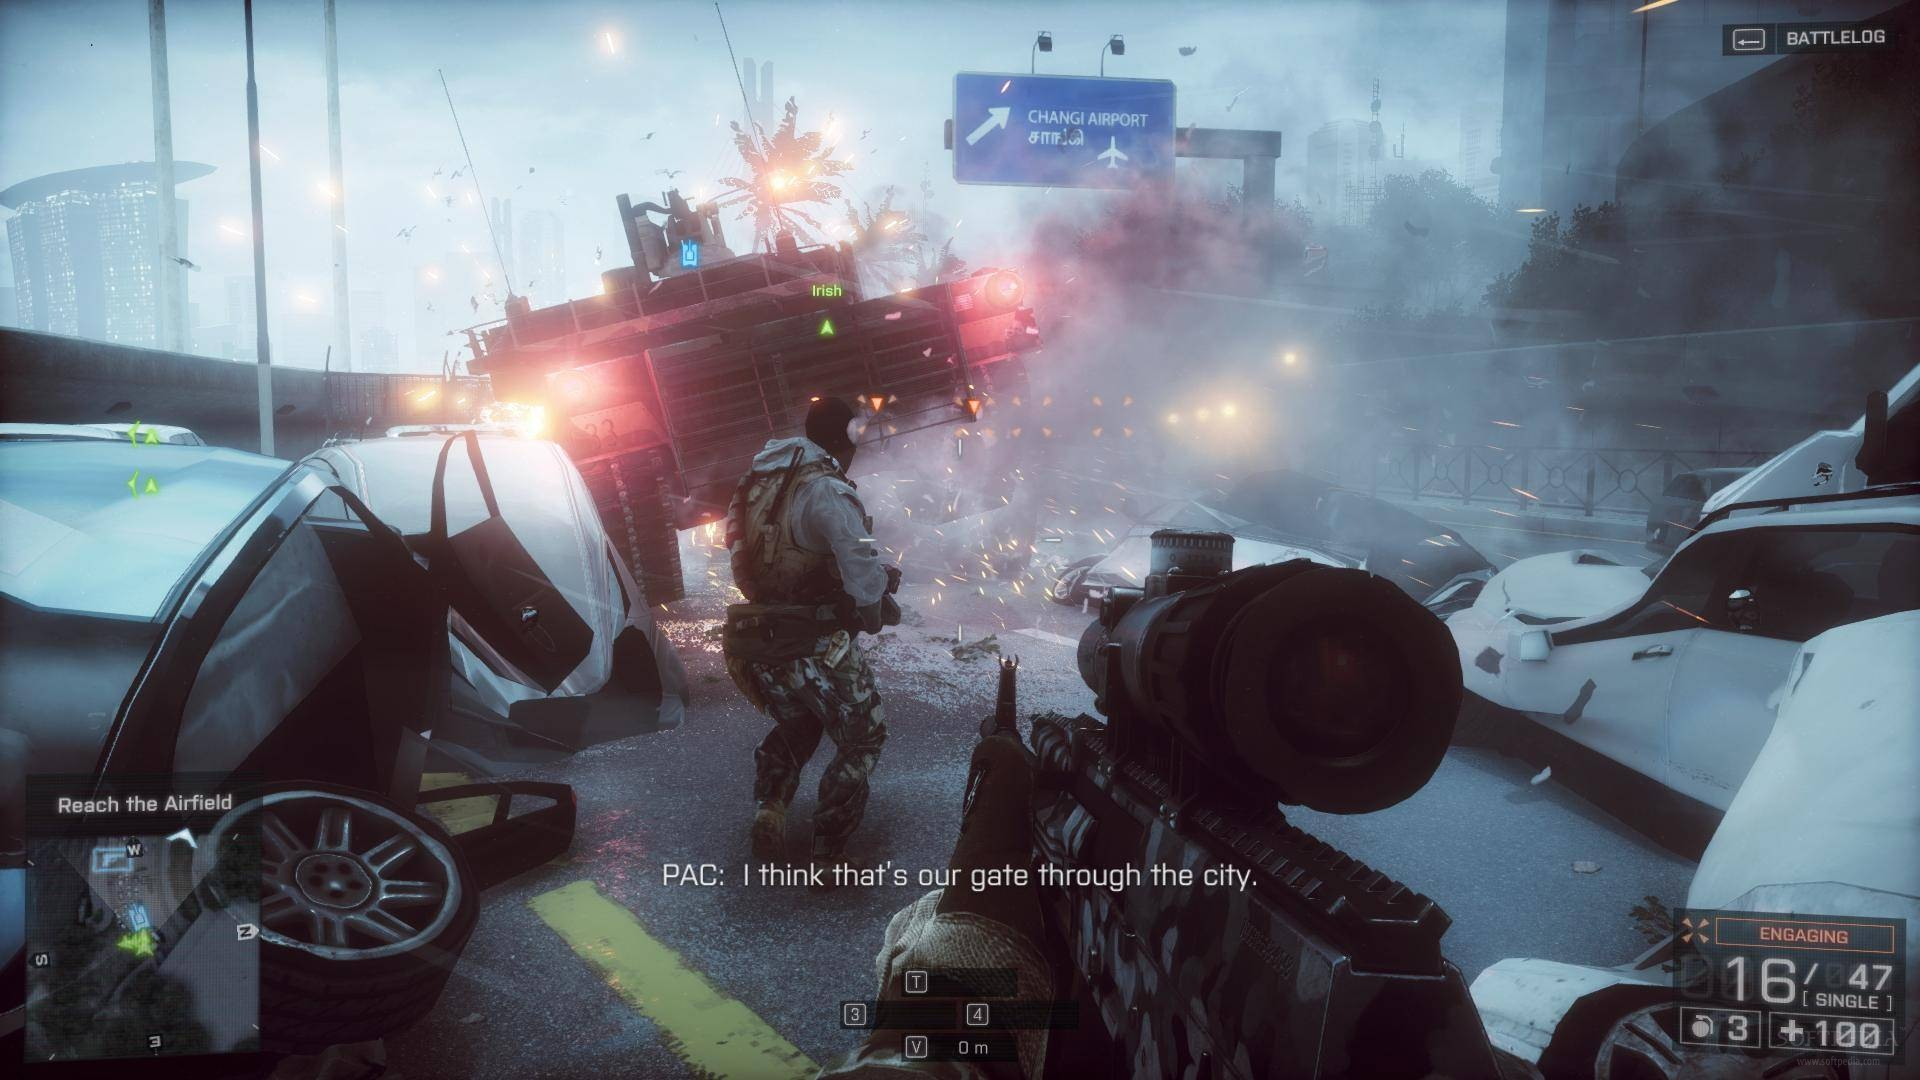 Battlefield 4 PC Update Gets Huge Changelog, Fixes Many issues and